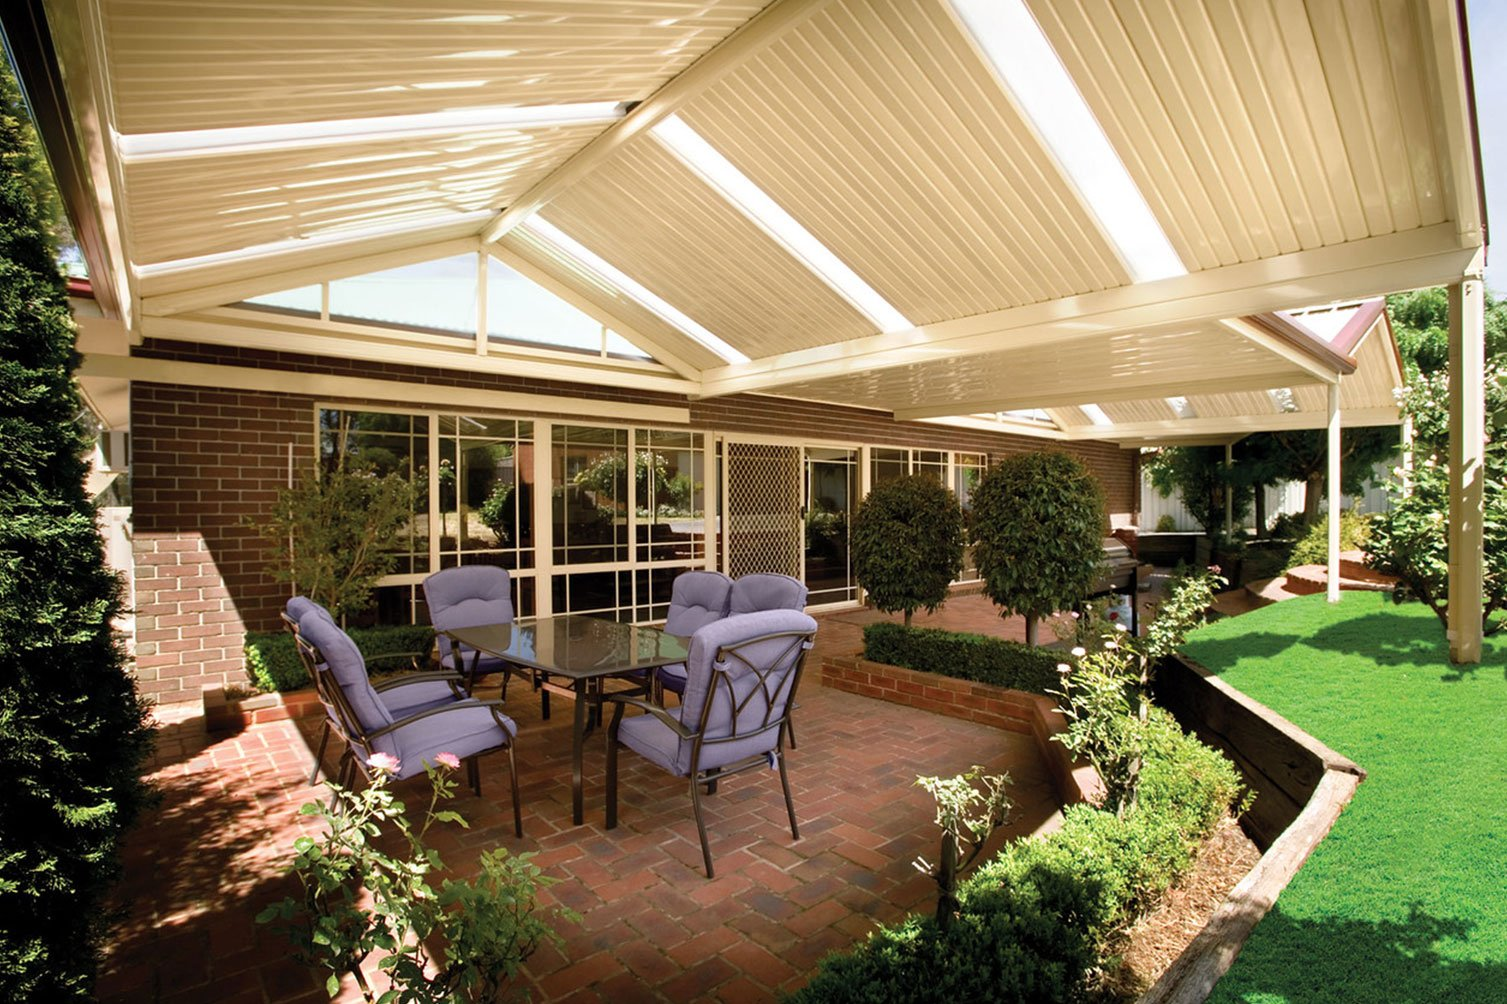 Feel the relaxing surrounding as you relax under the gable roof patio in Gold Coast